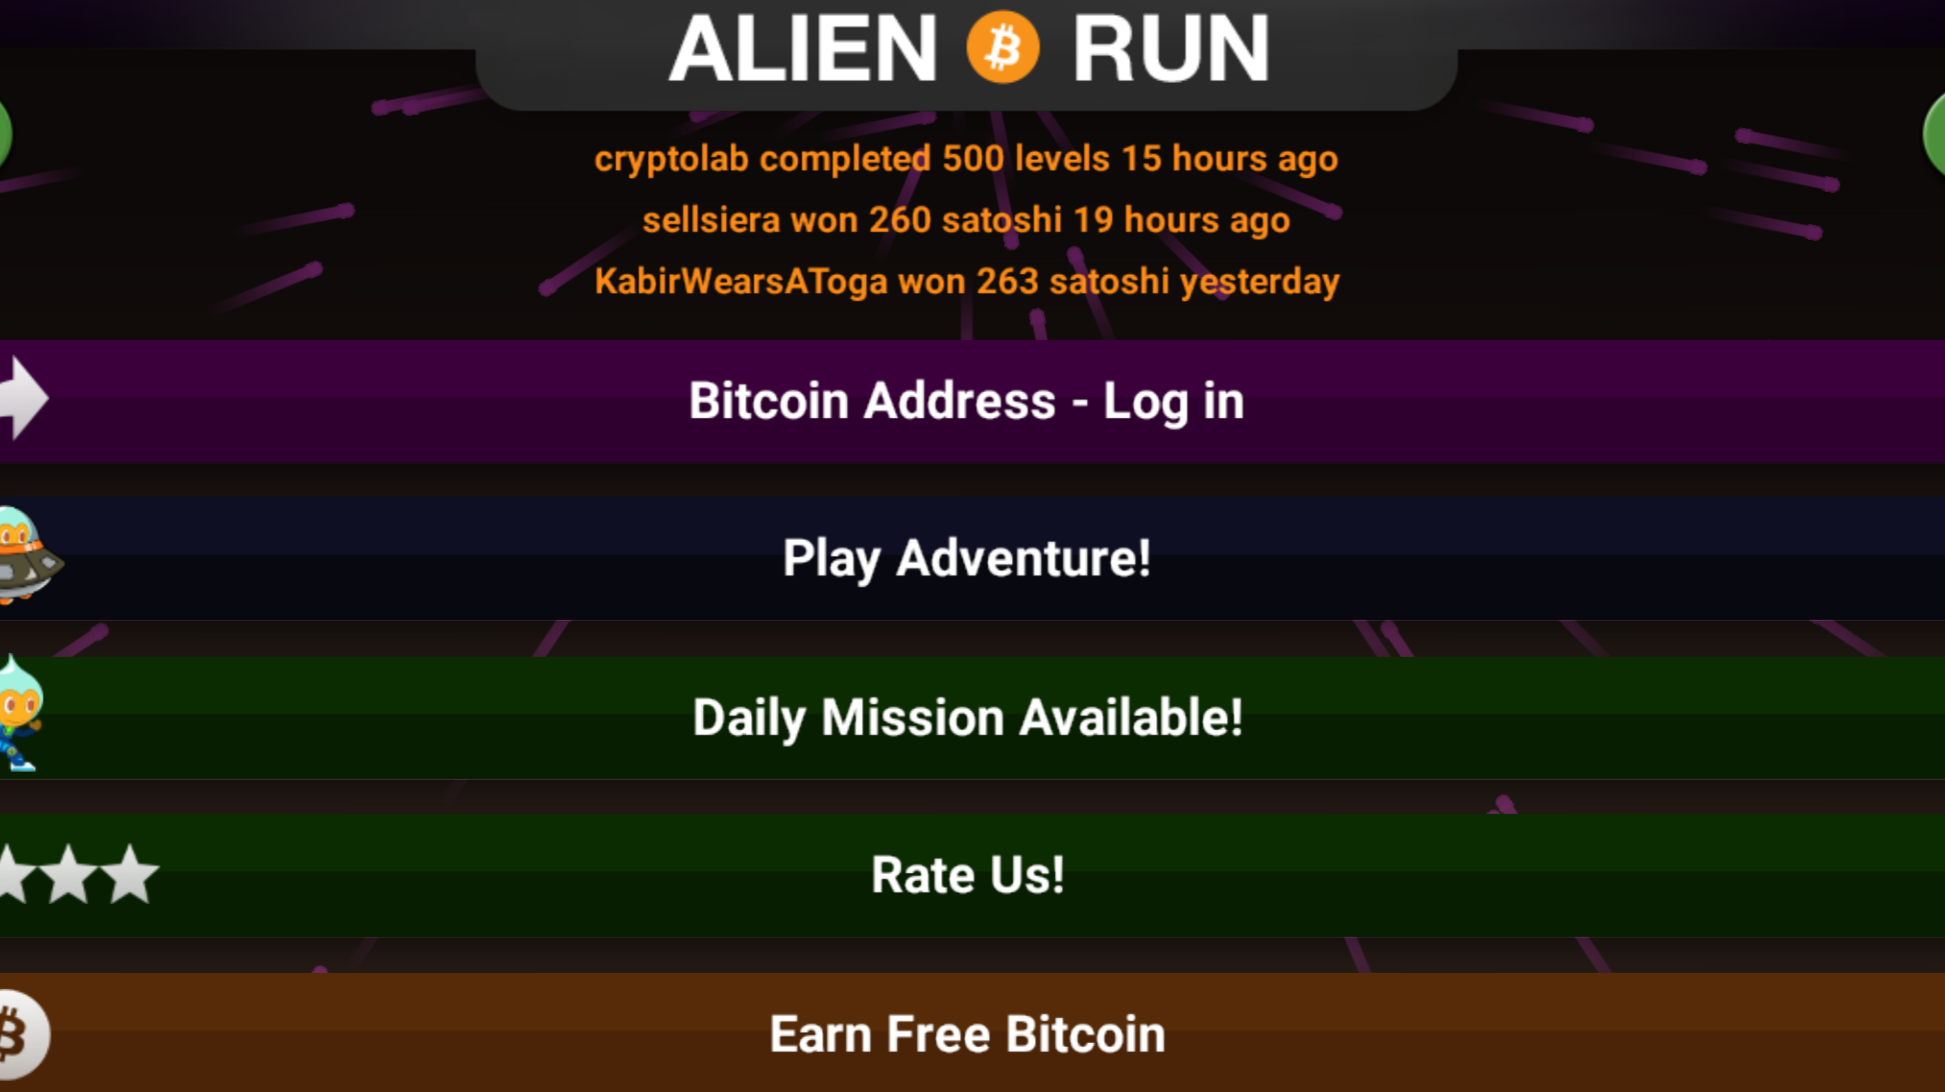 Alien Run TItle Screen